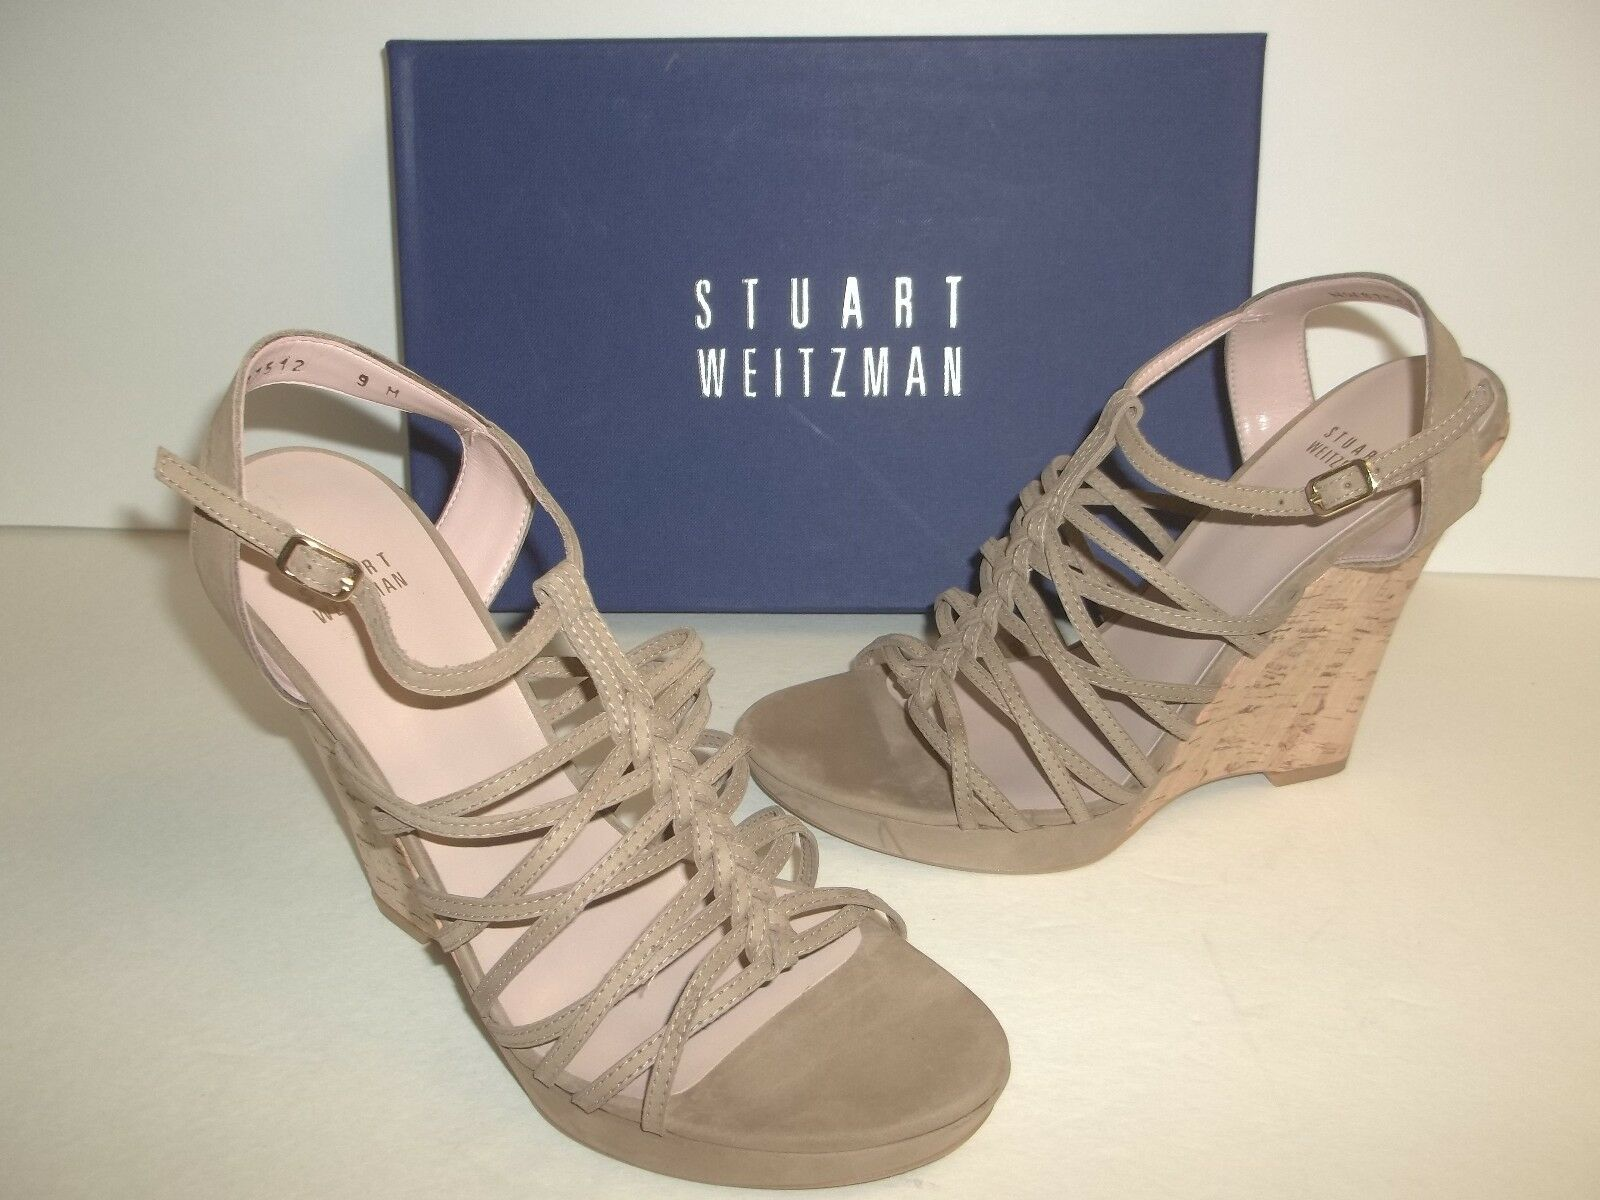 Stuart Weitzman Size 10 10 10 M Barrister Tan Leather Wedge Sandals New Womens shoes 6e92a6